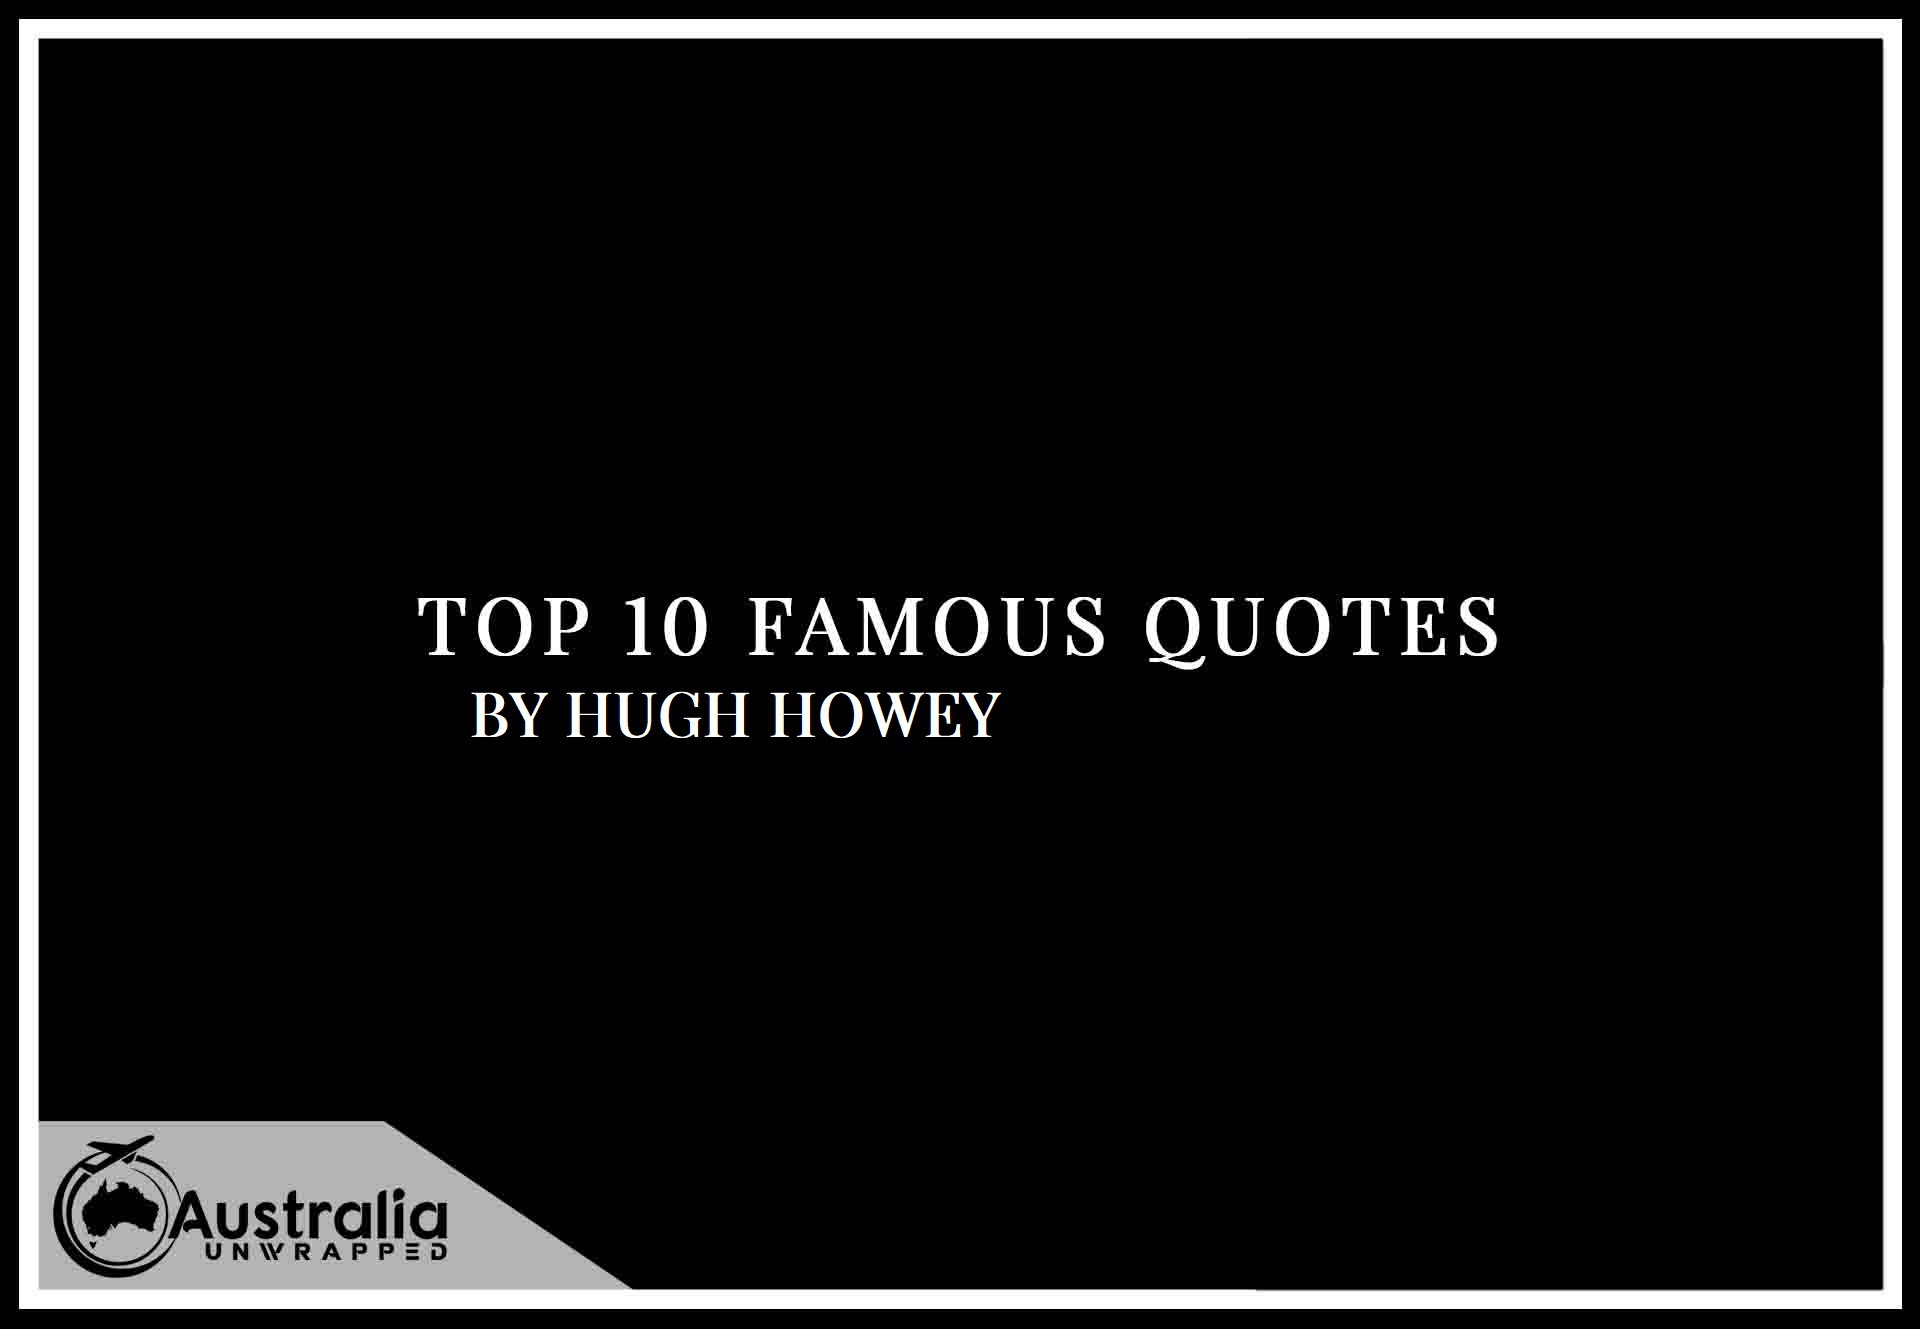 Top 10 Famous Quotes by Author Hugh Howey